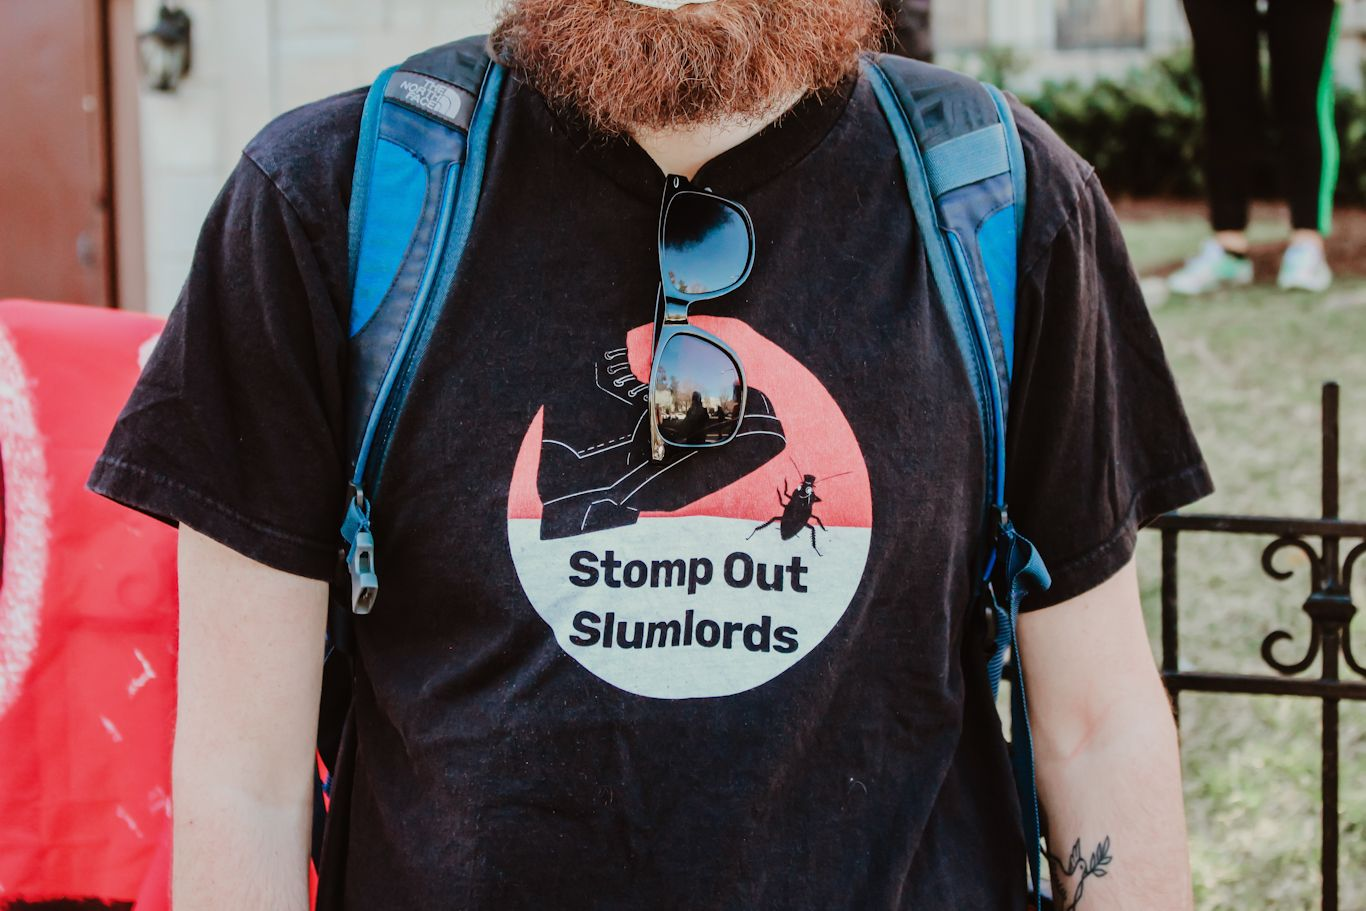 A member of the DC DSA's anti-eviction and tenant organizing campaign, Stomp Out Slumlords. Eleanor Goldfield | ArtKillingApathy.com